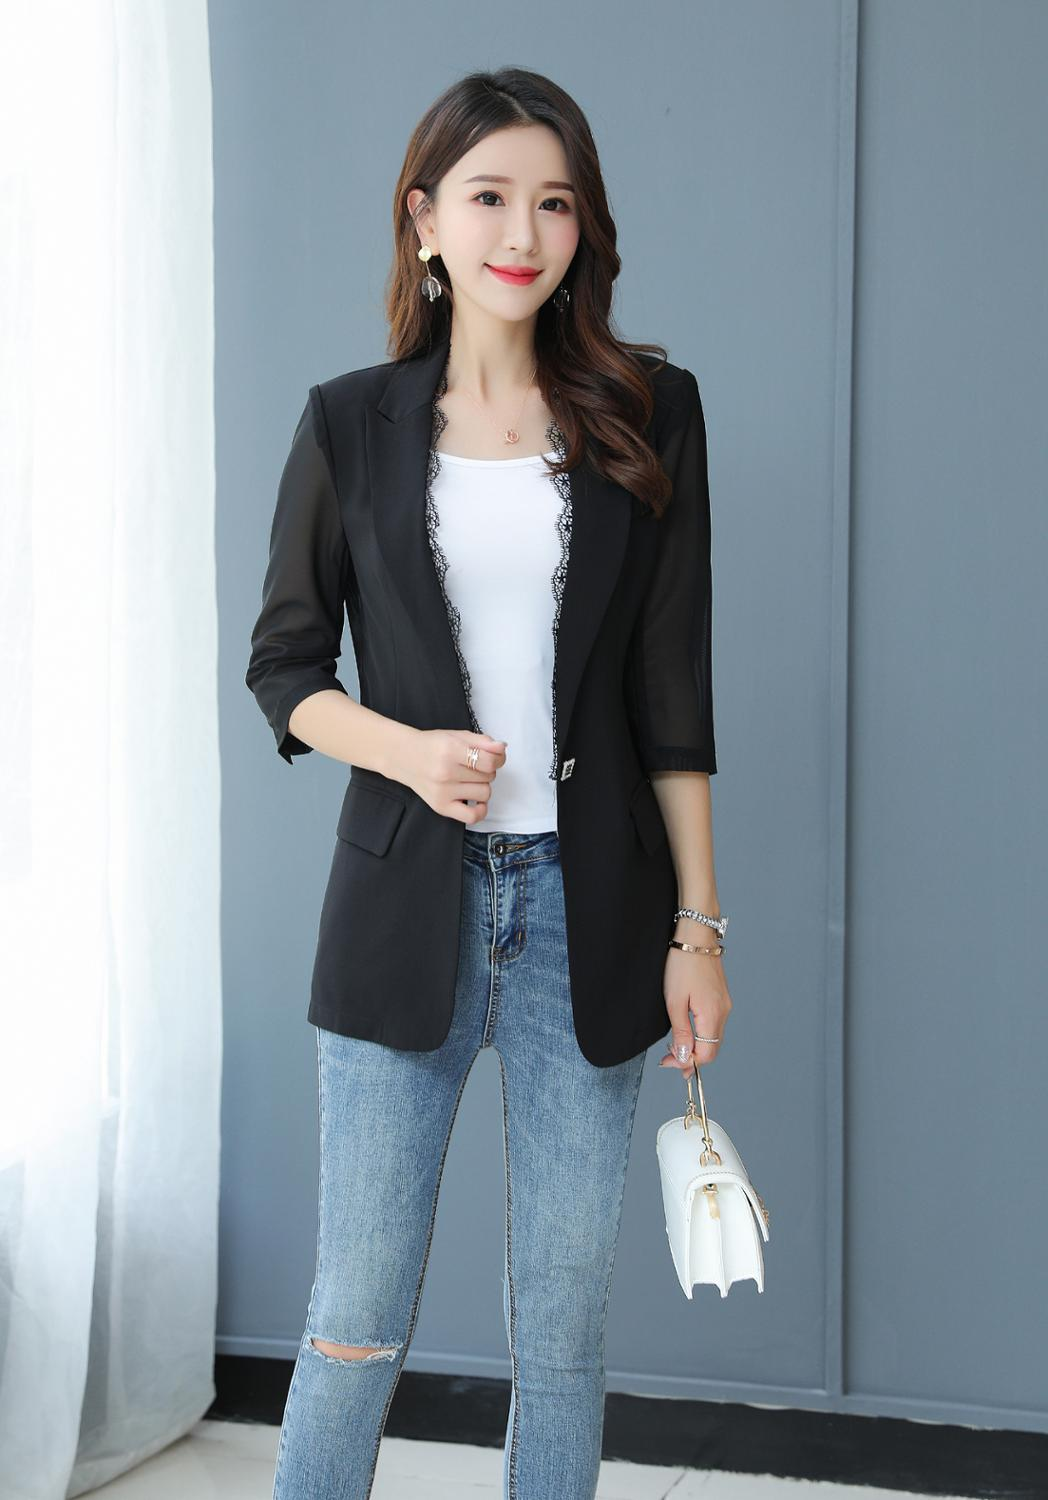 Brieuces Women's Jacket spring Autumn New Women's Fashion Slim 3/4  Sleeve Black Small Suit Ladies One button coat Women's Blaze